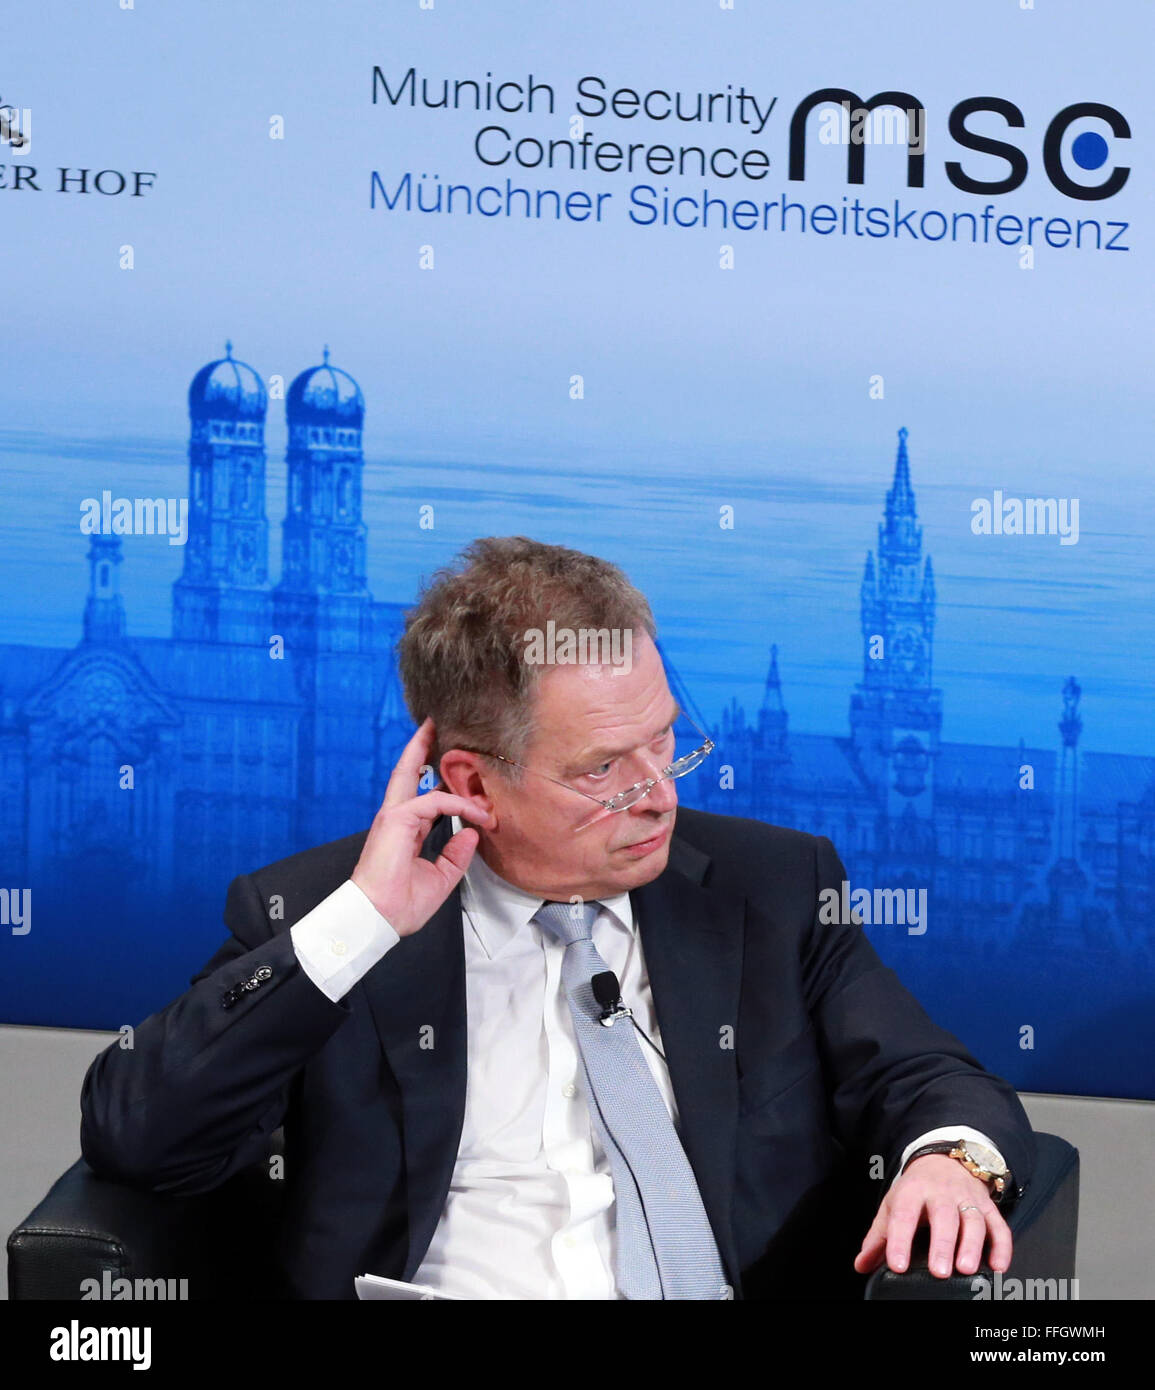 Munich, Germany. 13th Feb, 2016. Finnish President Sauli Niinisto attends the Munich Security Conference(MSC) in - Stock Image